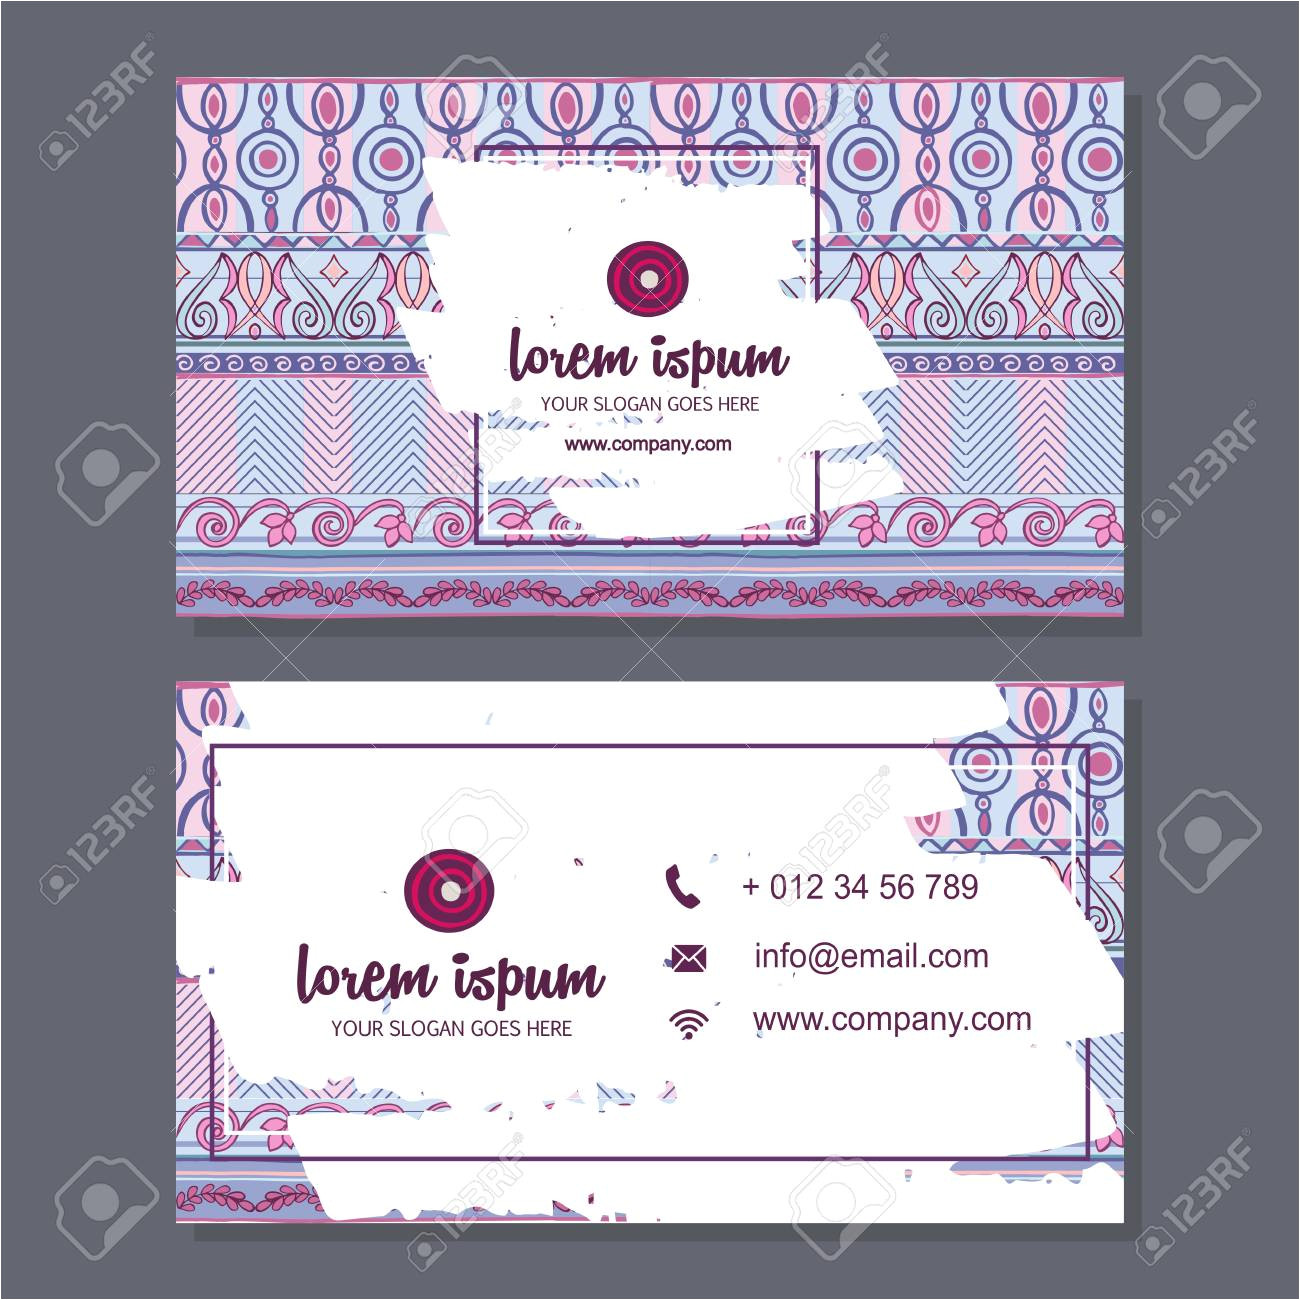 59961723 business card or visiting card template with boho style pattern background corporate identity design jpg